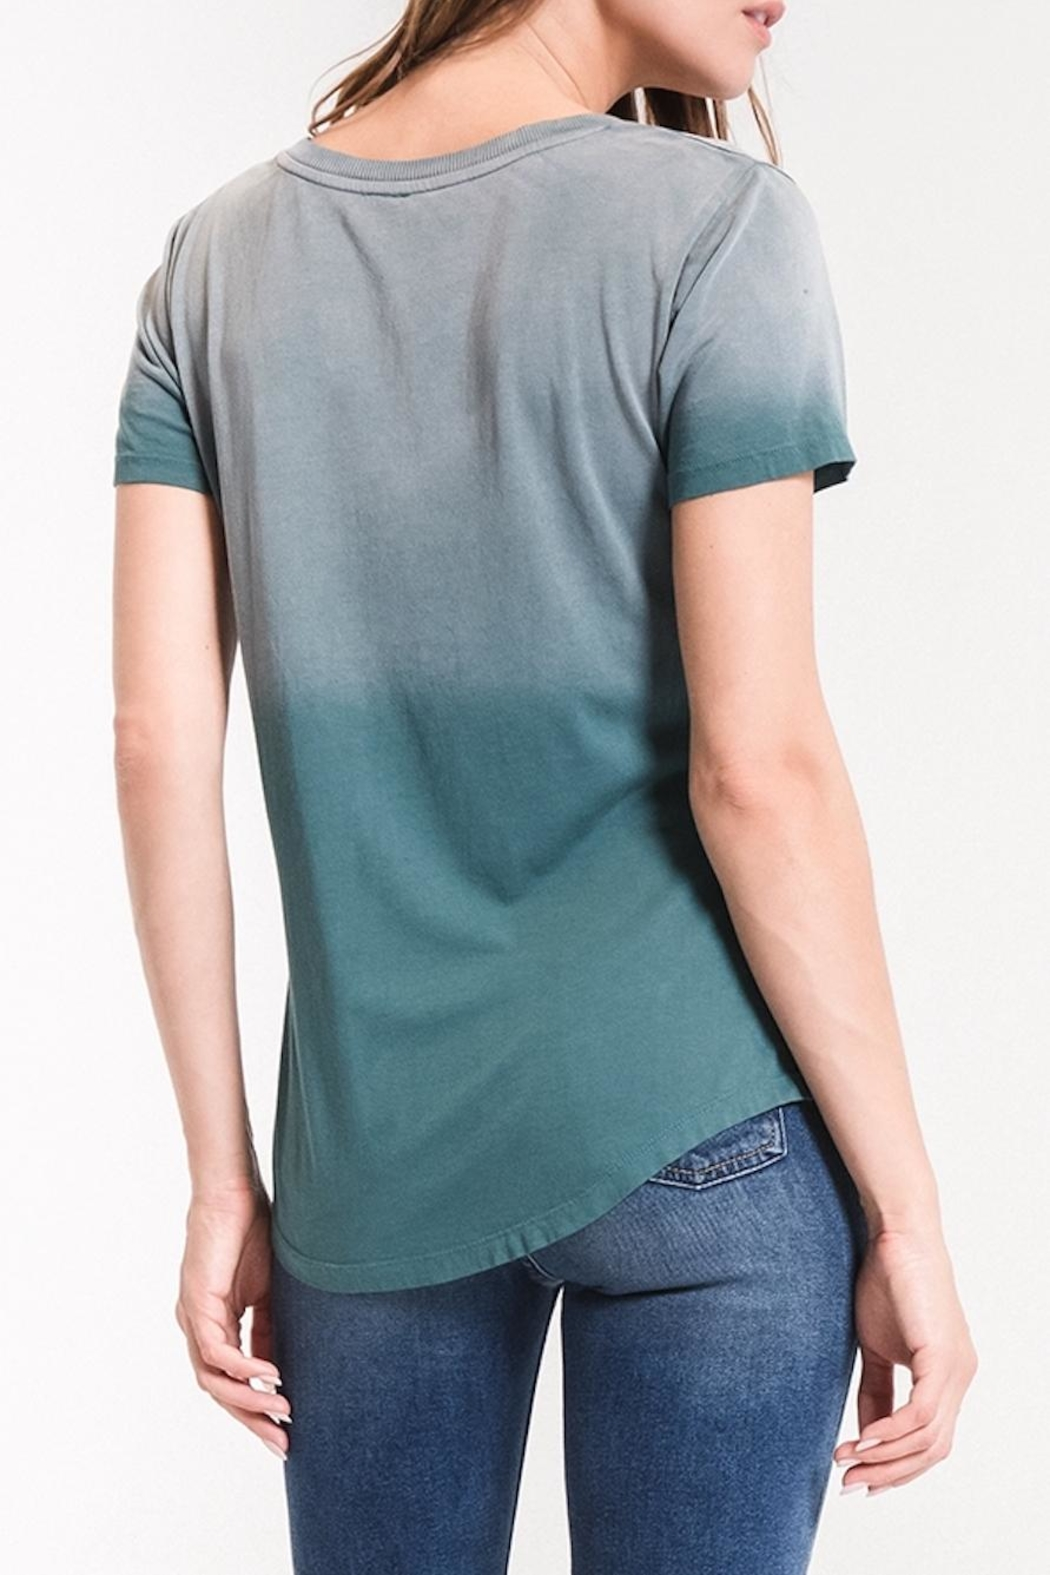 z supply Ombre v-Neck Tee - Side Cropped Image